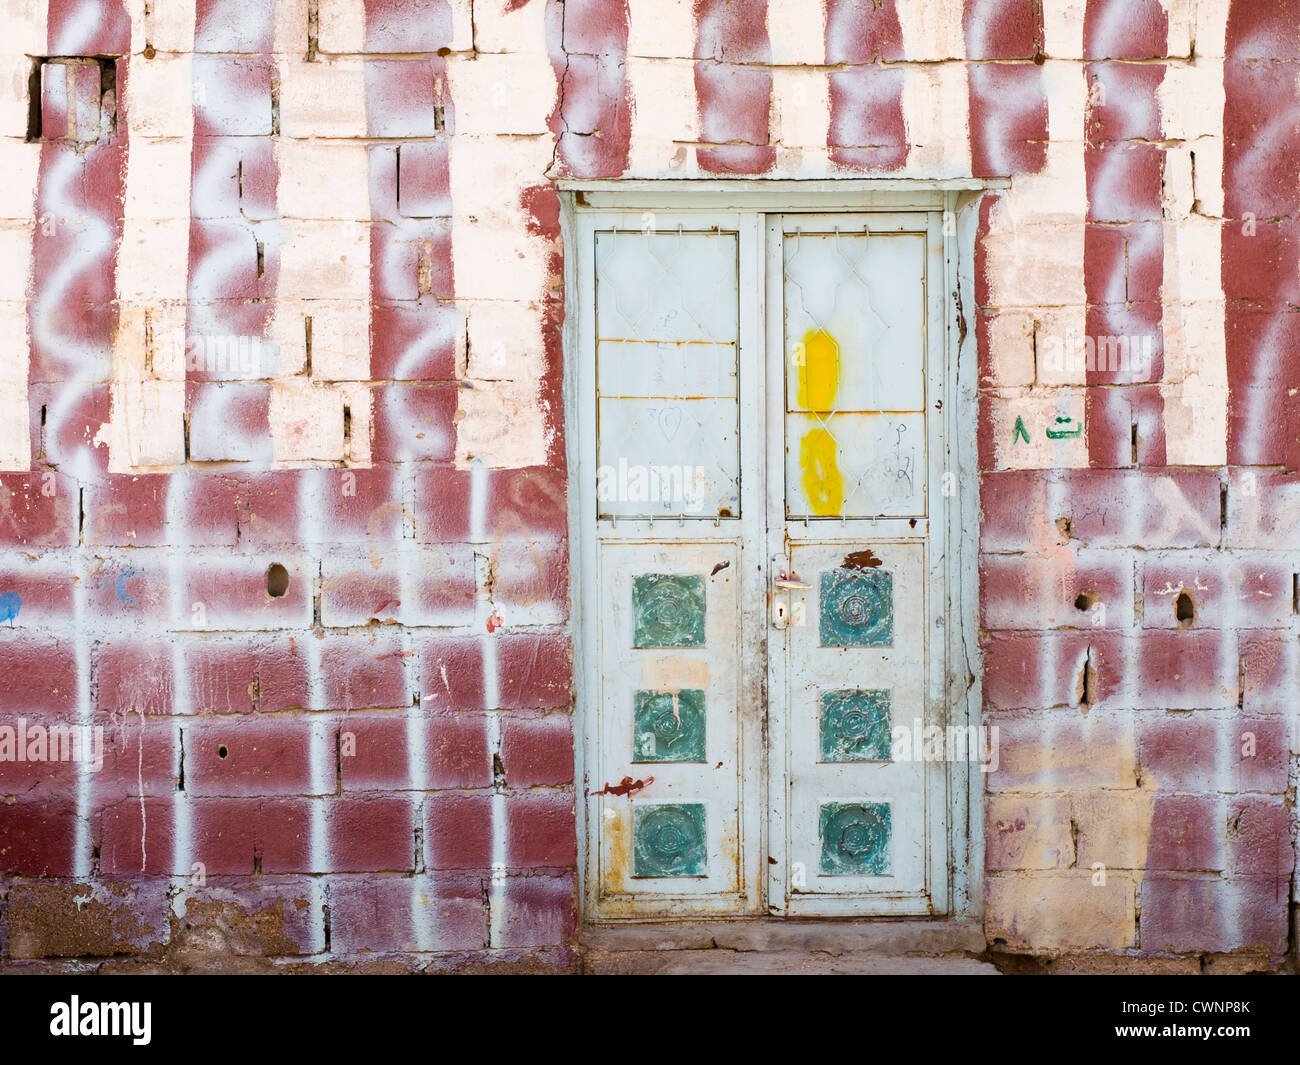 door-in-a-wall-with-numerous-patterns-an